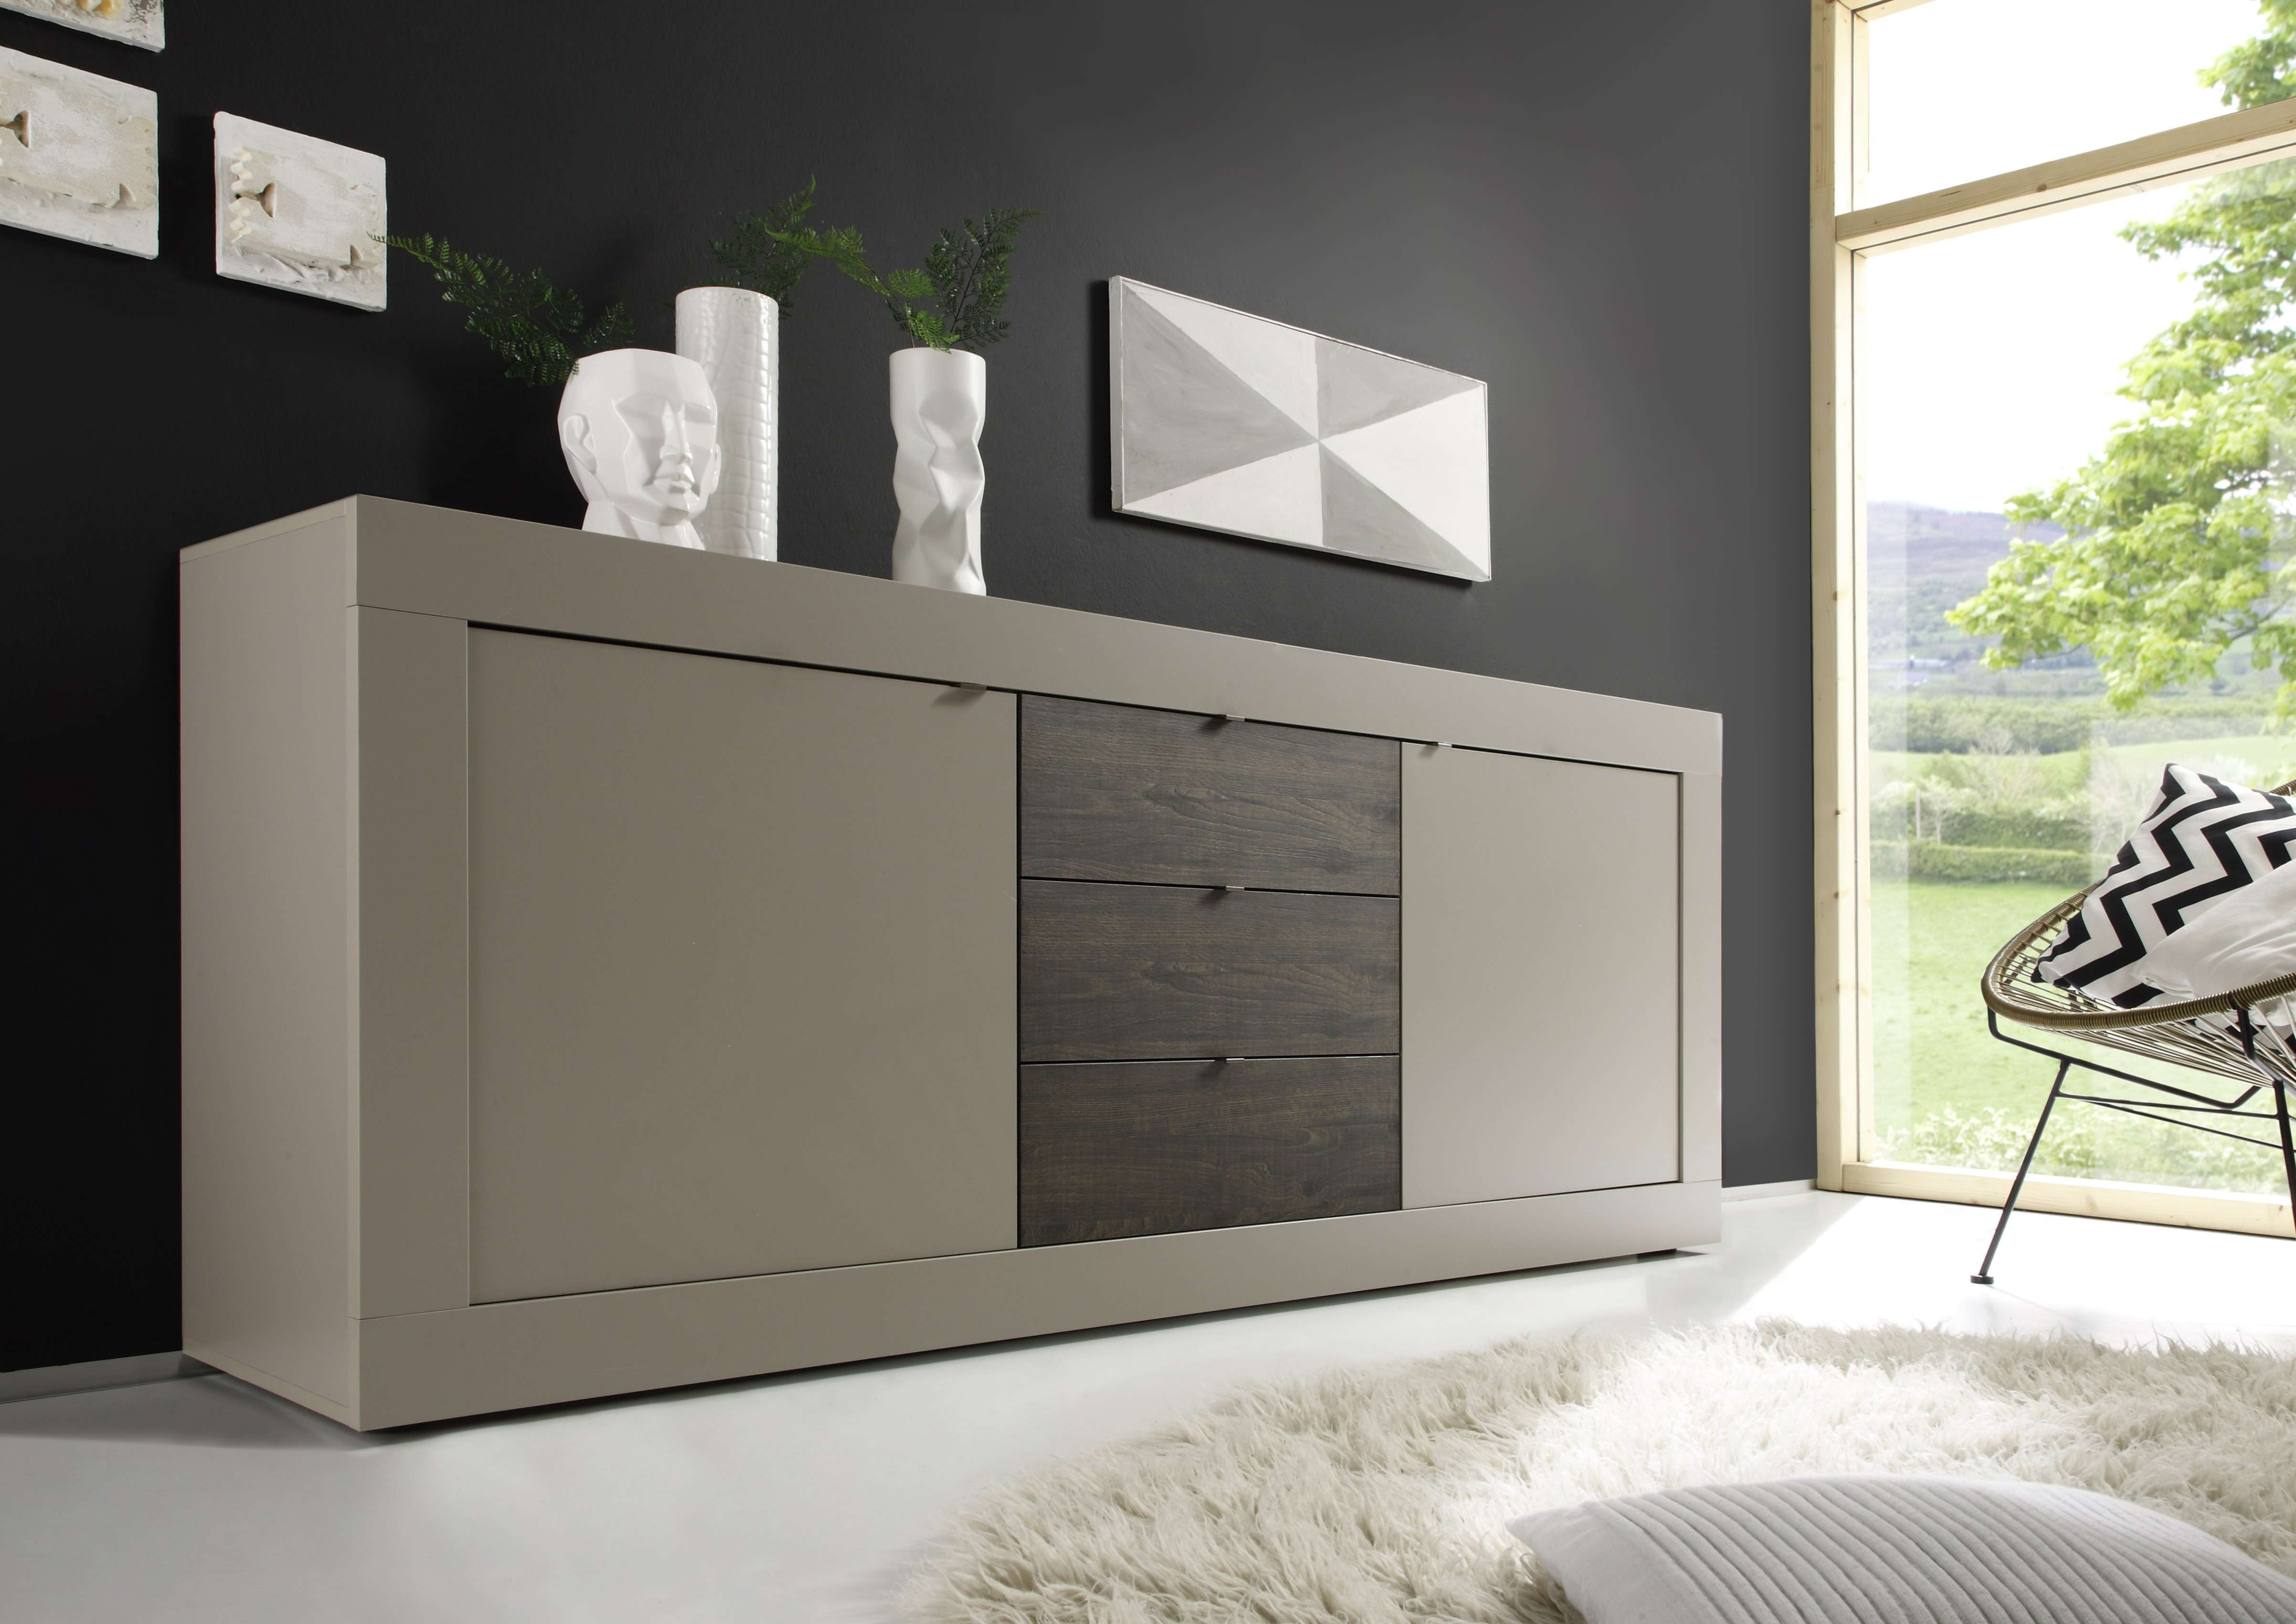 Basic Sideboard, Beige + Wenge Buy Online At Best Price – Sohomod With Wenge Sideboards (View 15 of 20)